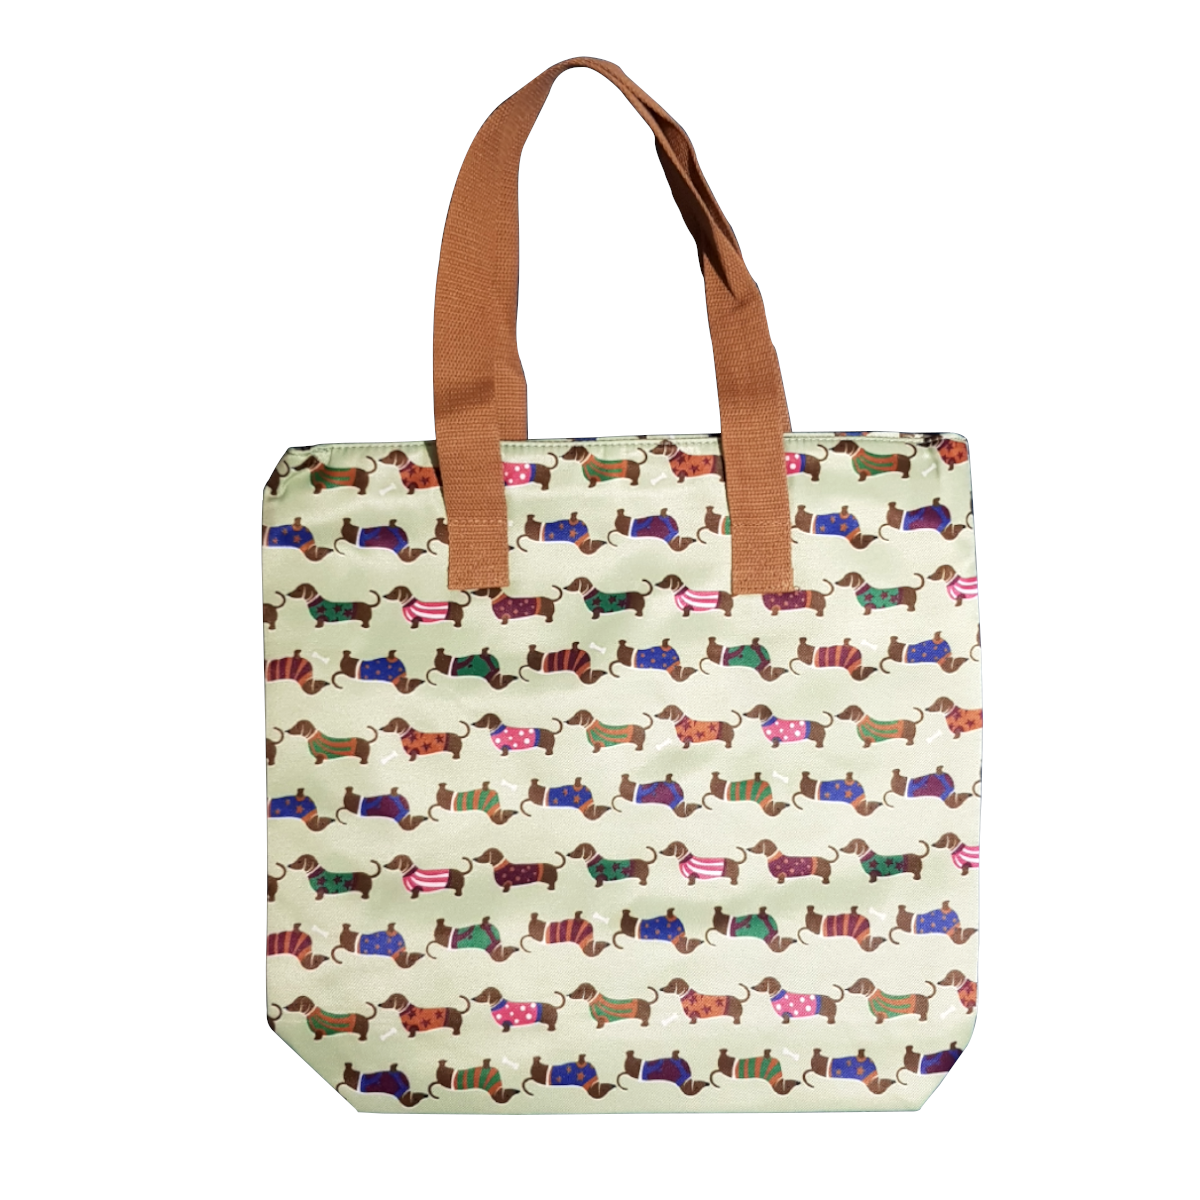 Dachshund Tote Bag - Green